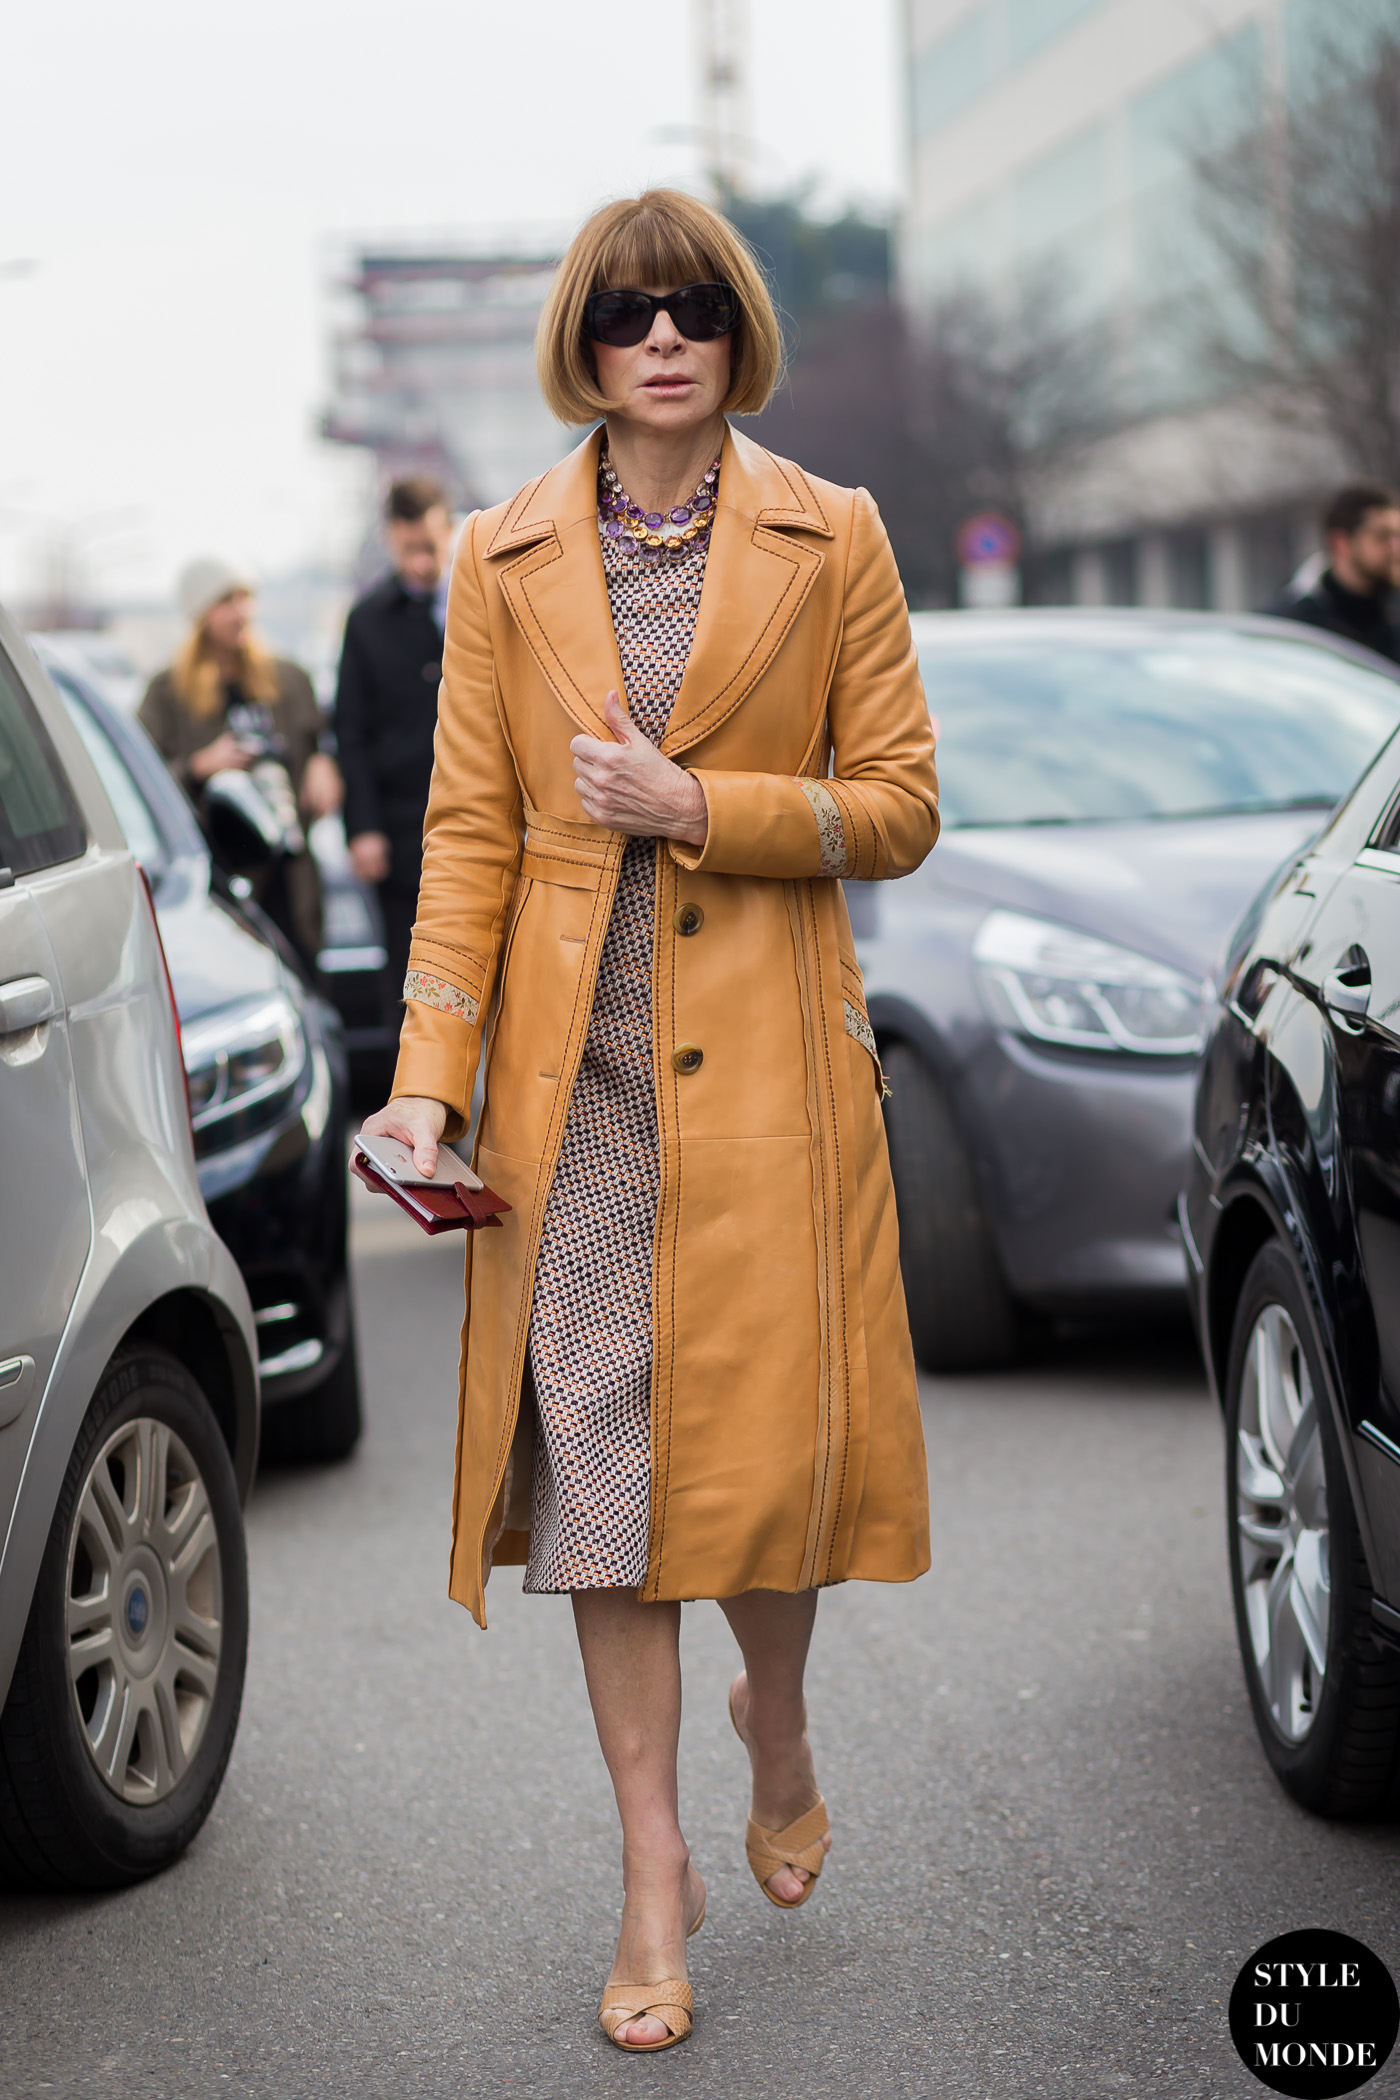 Anna wintour street style images galleries with a bite Celine fashion street style